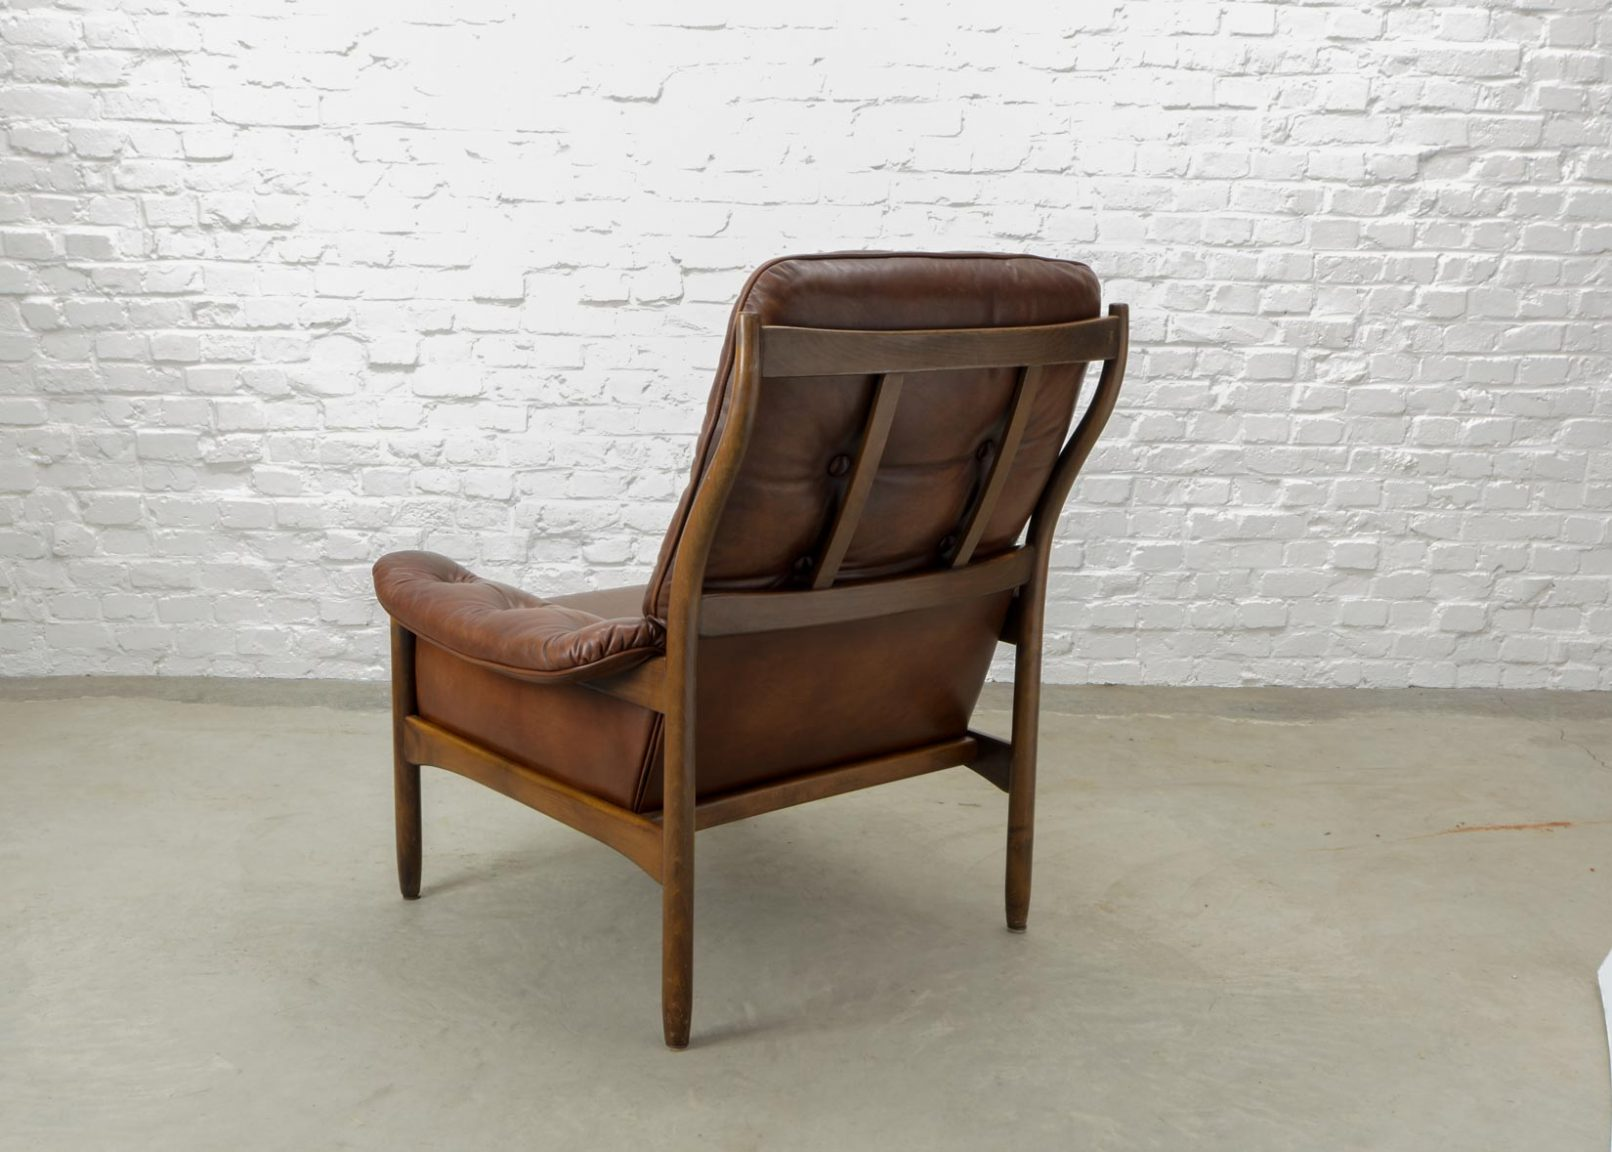 mid century scandinavian design chestnut leather lounge chair by g m bel sweden 1960s. Black Bedroom Furniture Sets. Home Design Ideas